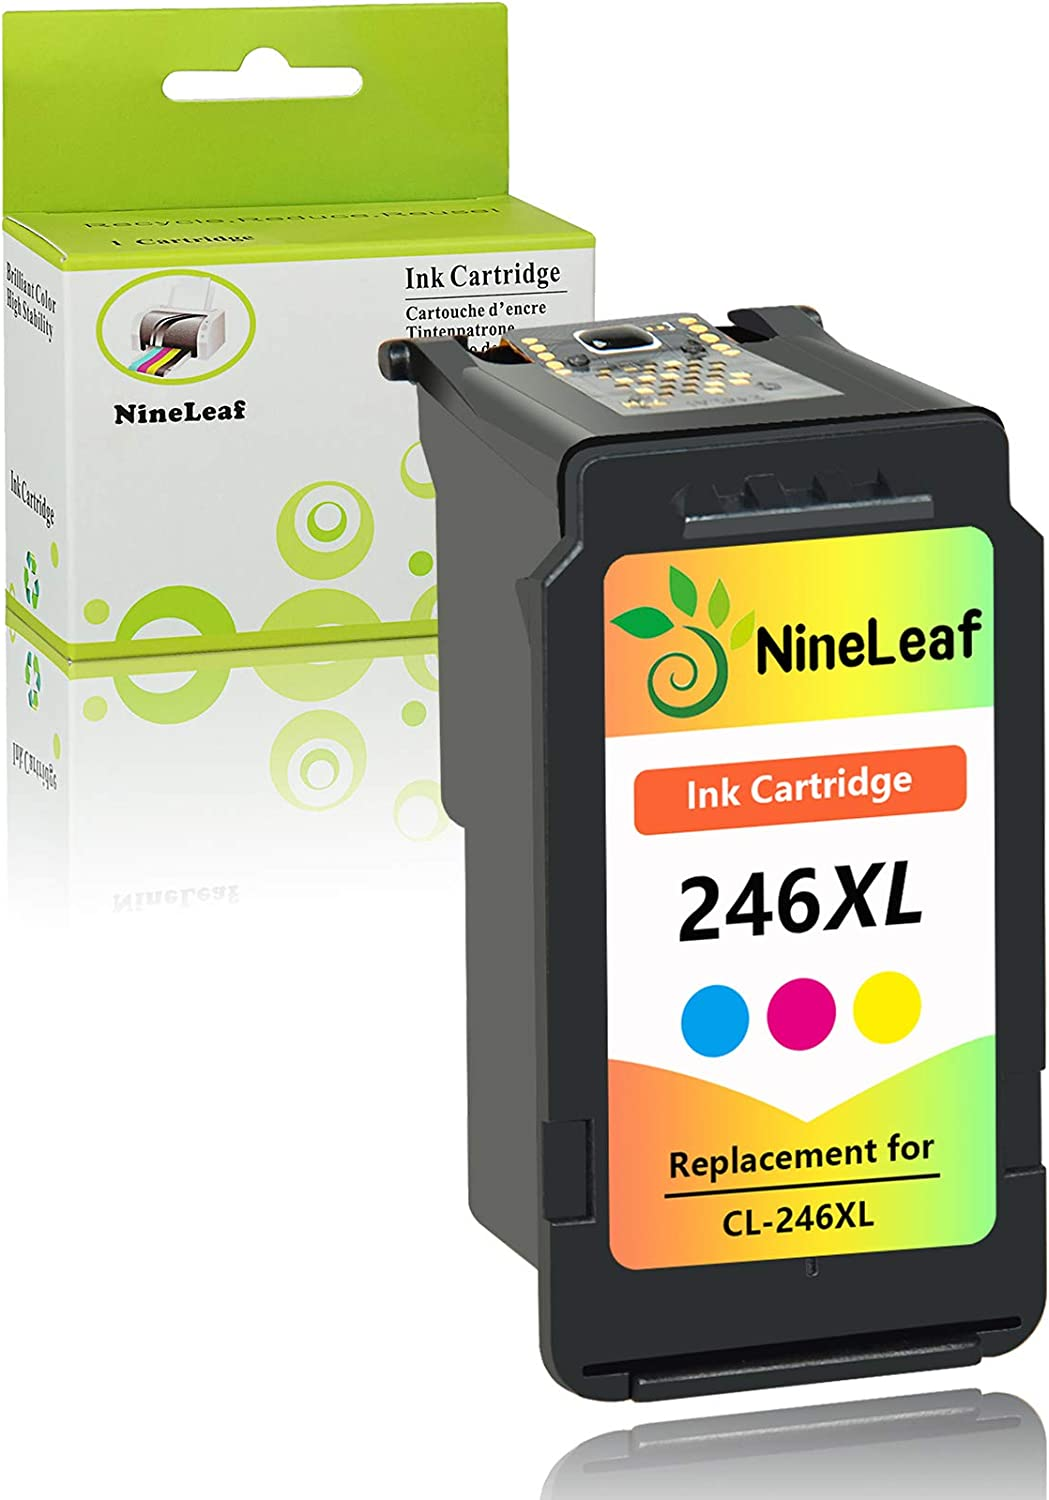 NineLeaf Remanufactured Ink Cartridge Compatible for Canon CL-246XL 246XL CL-244 use for PIXMA MX492 MX490 MG2920 MG2922 MG2420 MG2520 IP2820 (Tri-Color,1 Pack)